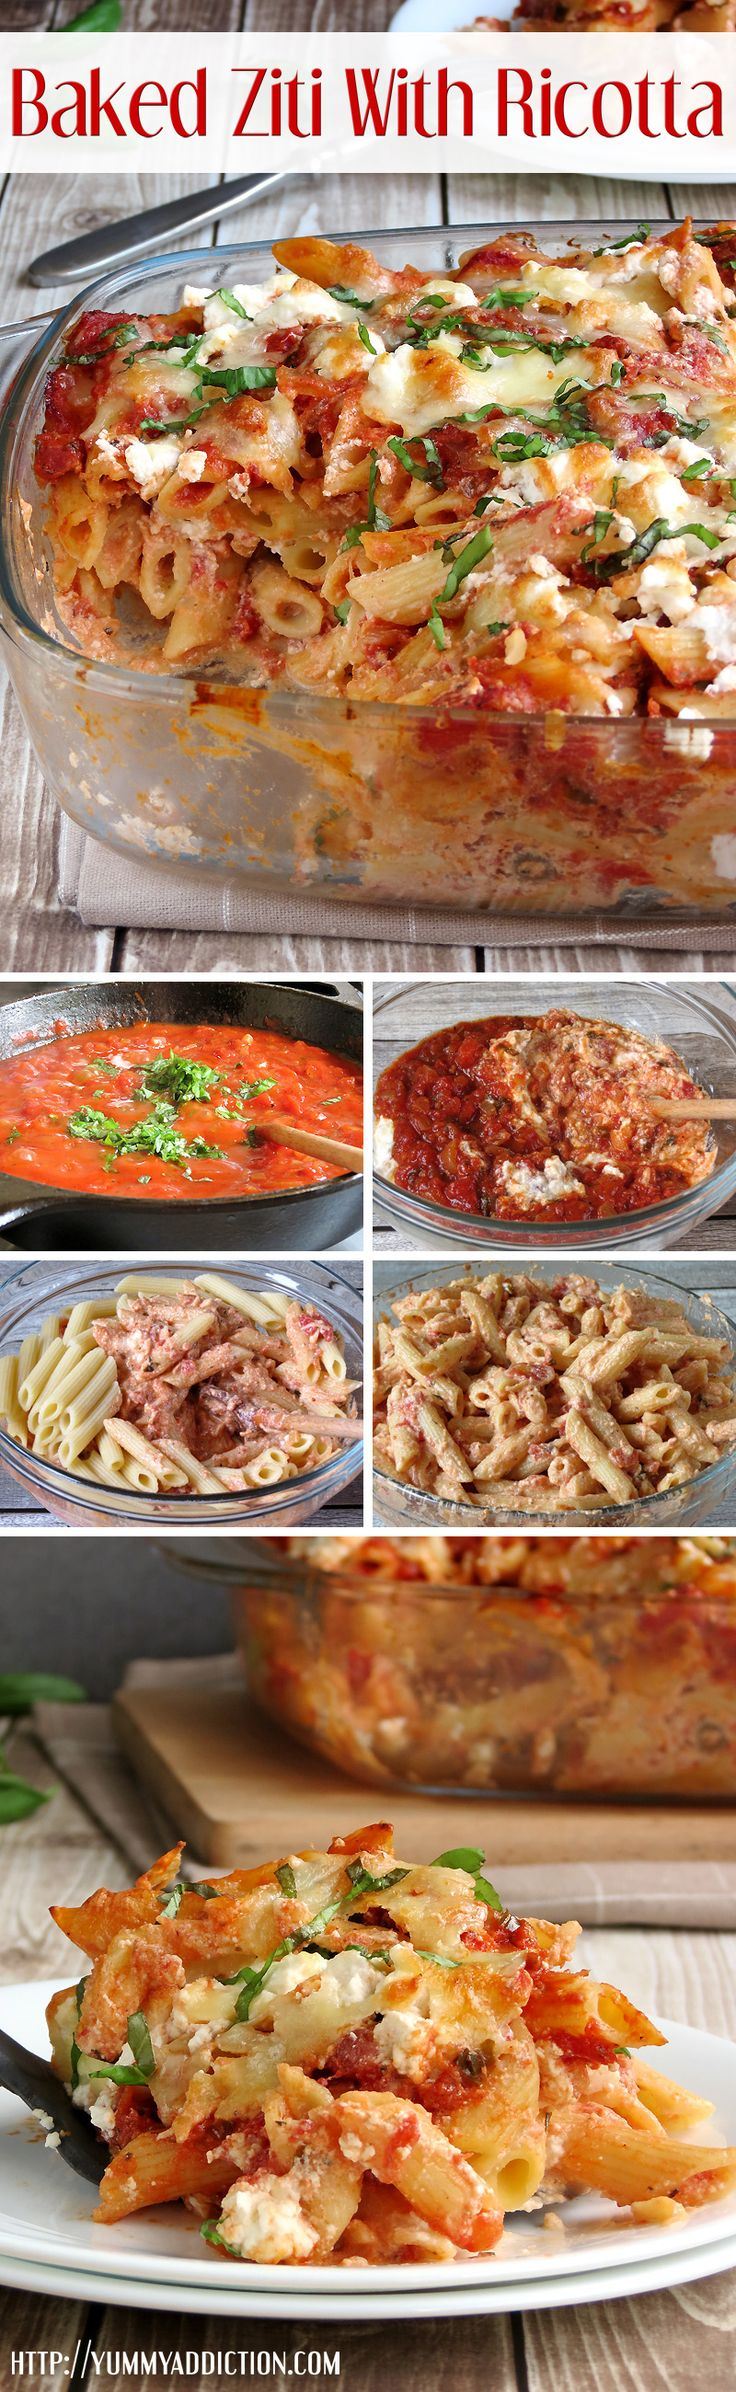 Baked Ziti With Ricotta | YummyAddiction.com